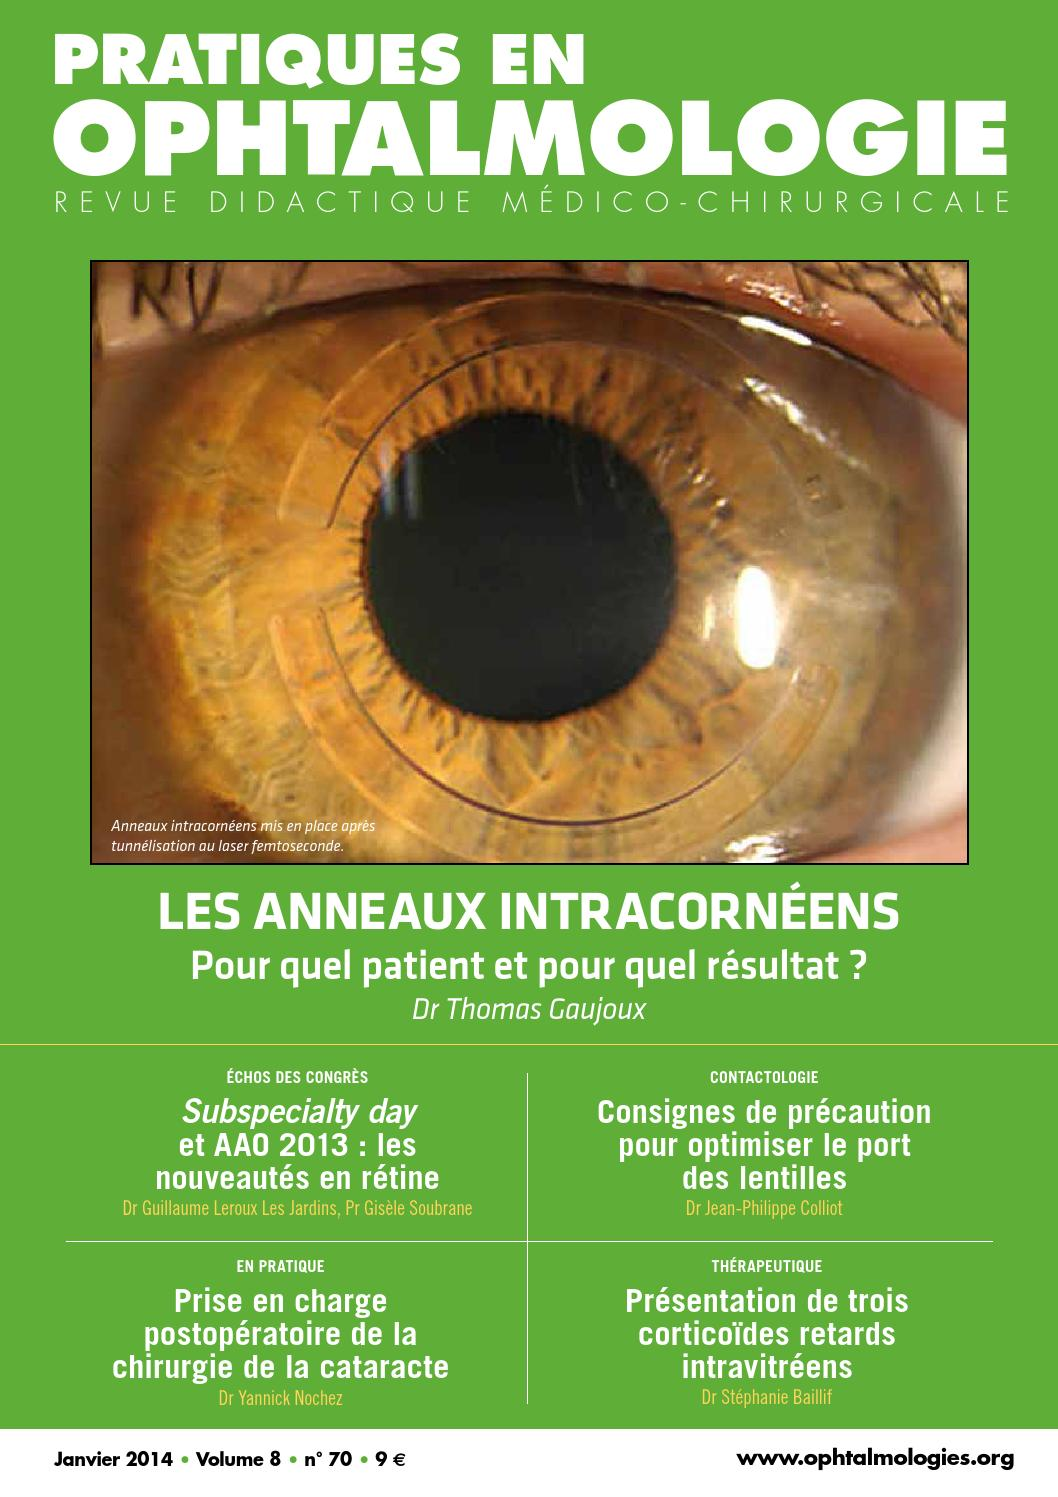 Po70 By Issuu Complet Expressions Pdf Pharma shCxQrdt